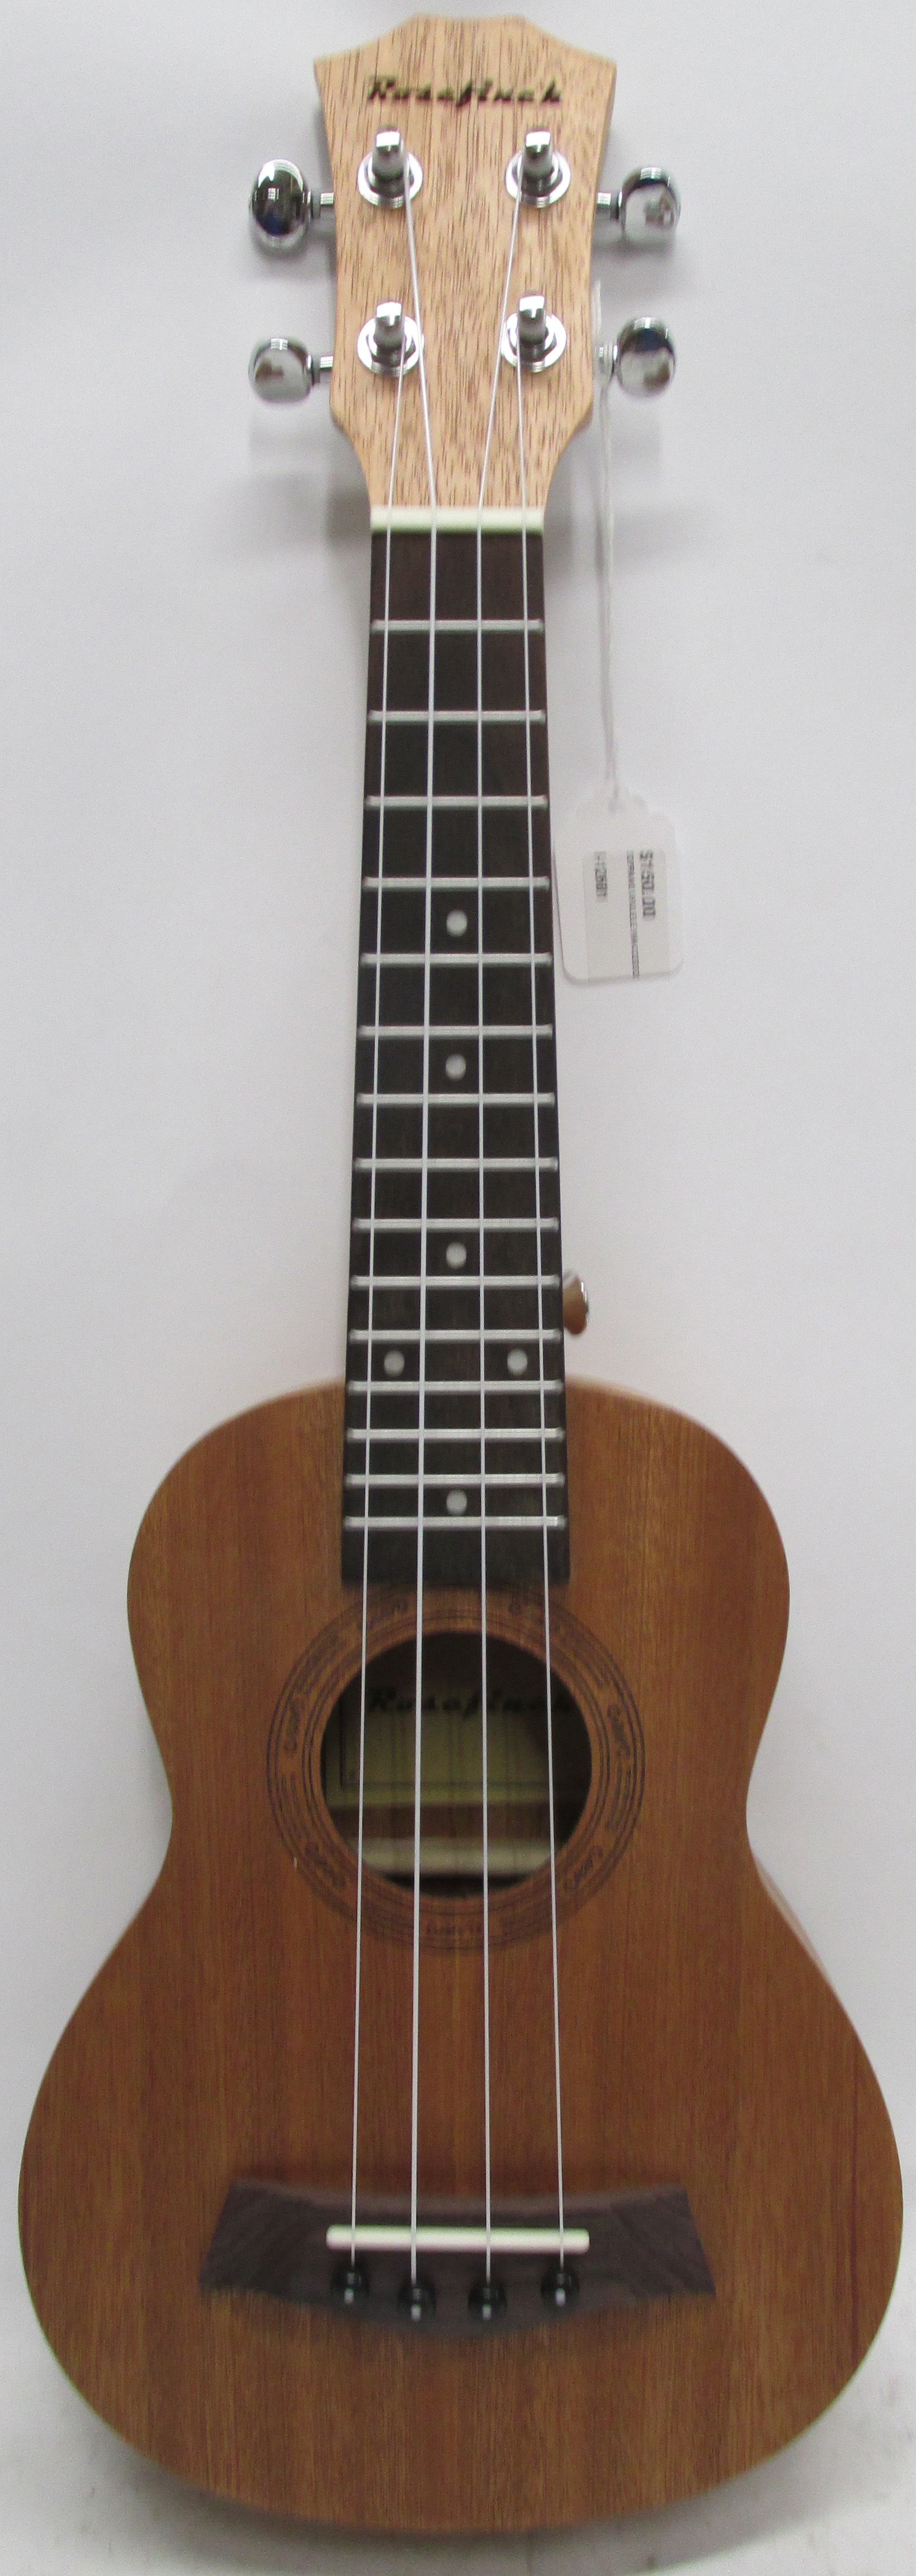 -  - UKULELE MUSICAL INSTRUMENTS